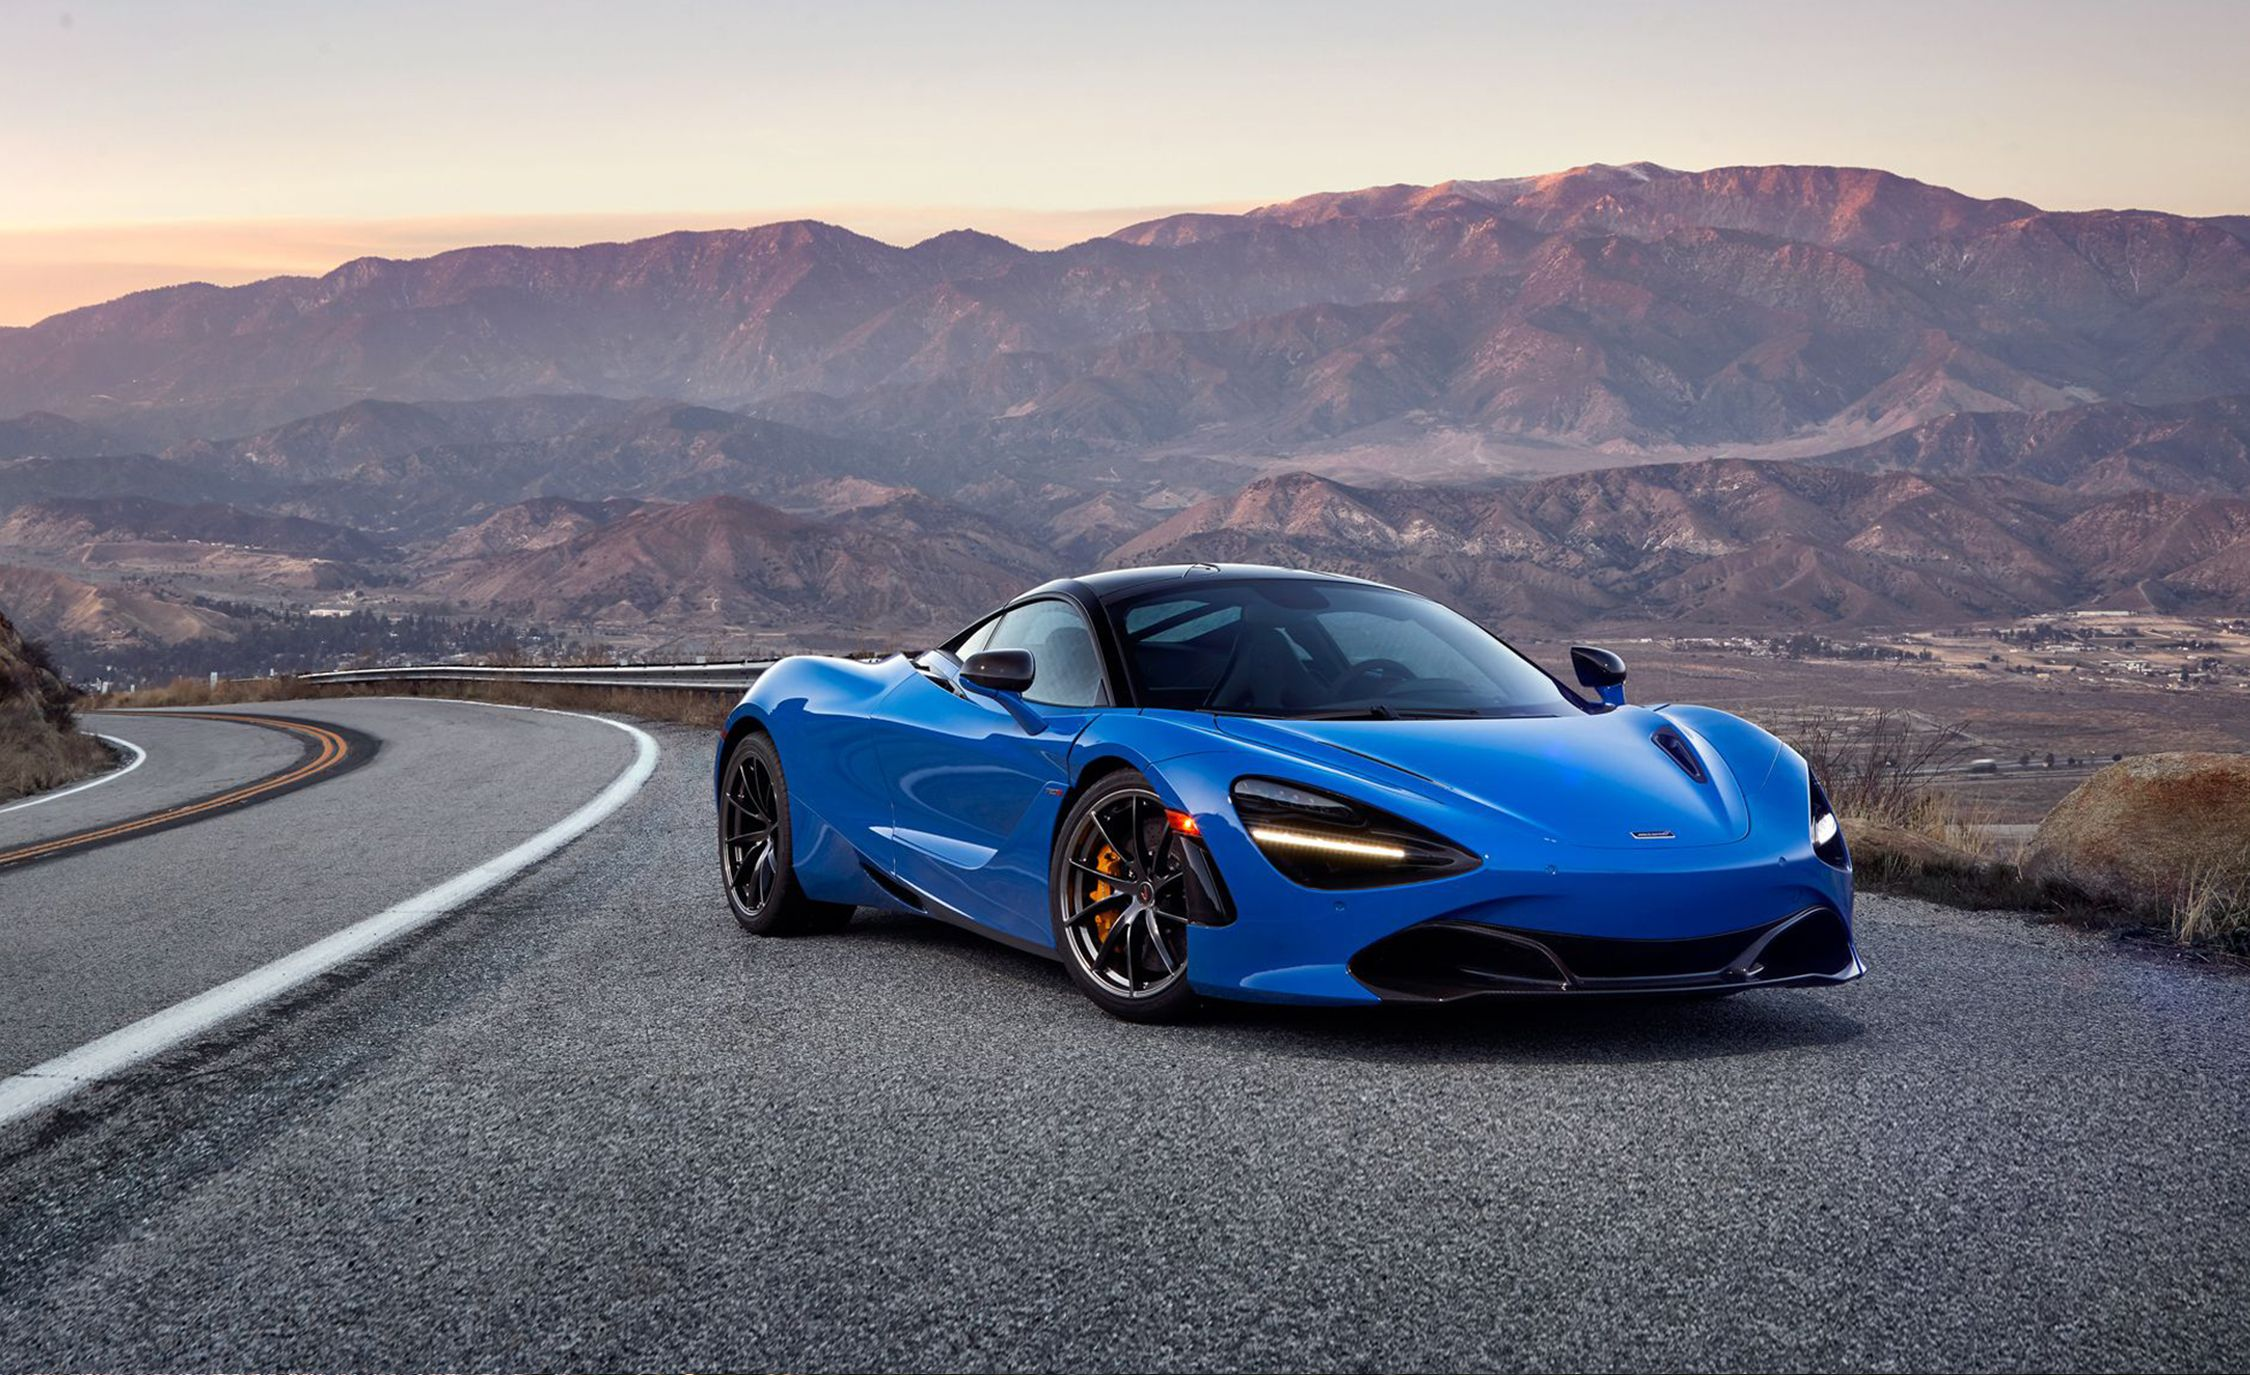 2019 mclaren 720s reviews | mclaren 720s price, photos, and specs